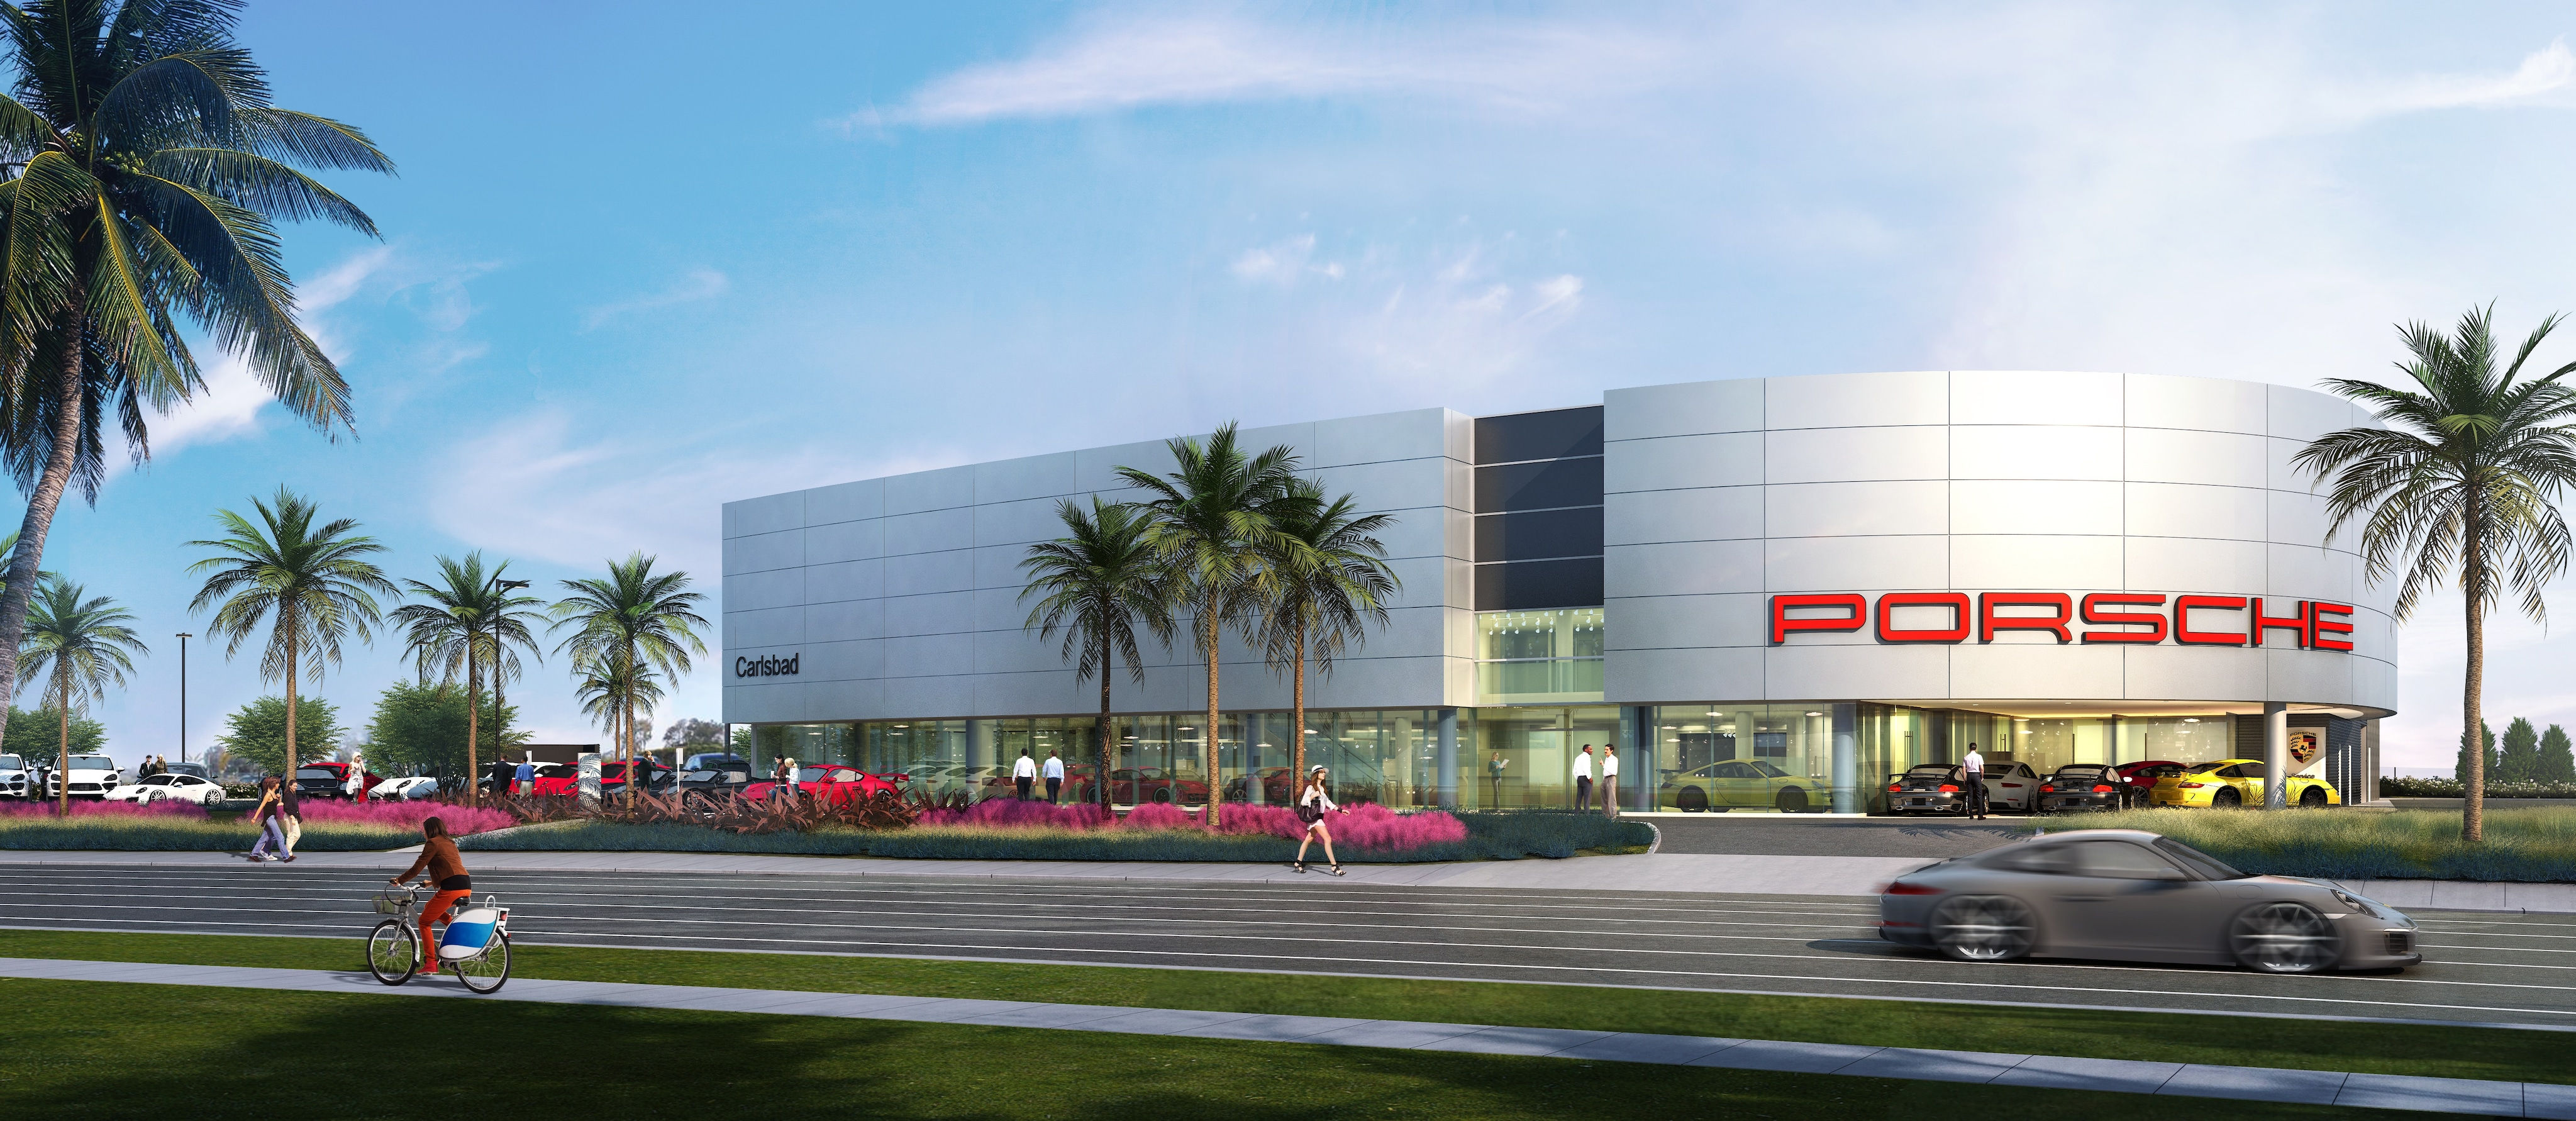 New Porsche Facility Photo 2.jpg